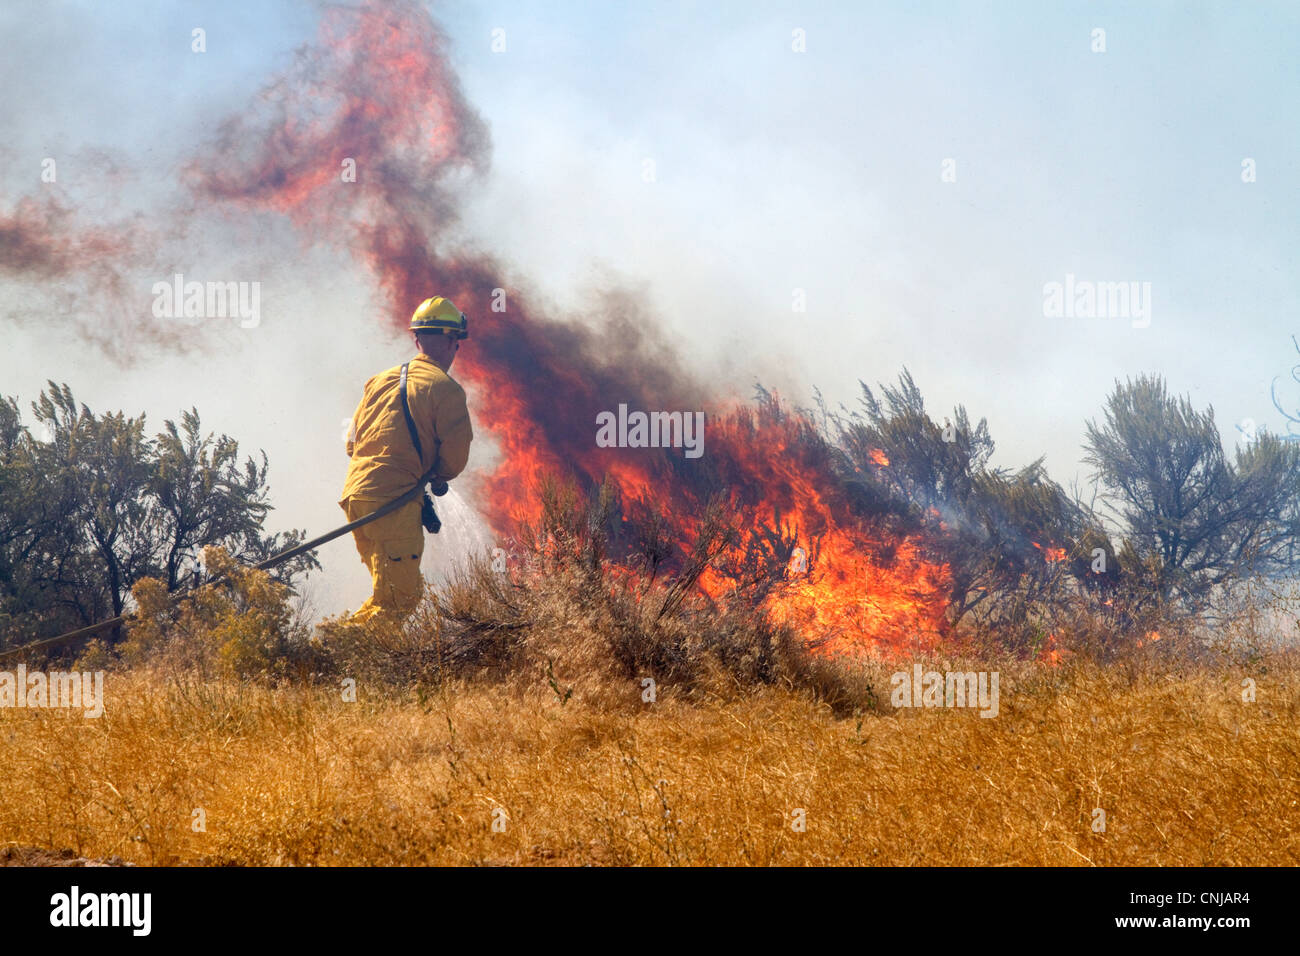 Wildfire south of the city of Boise, Idaho, USA. - Stock Image